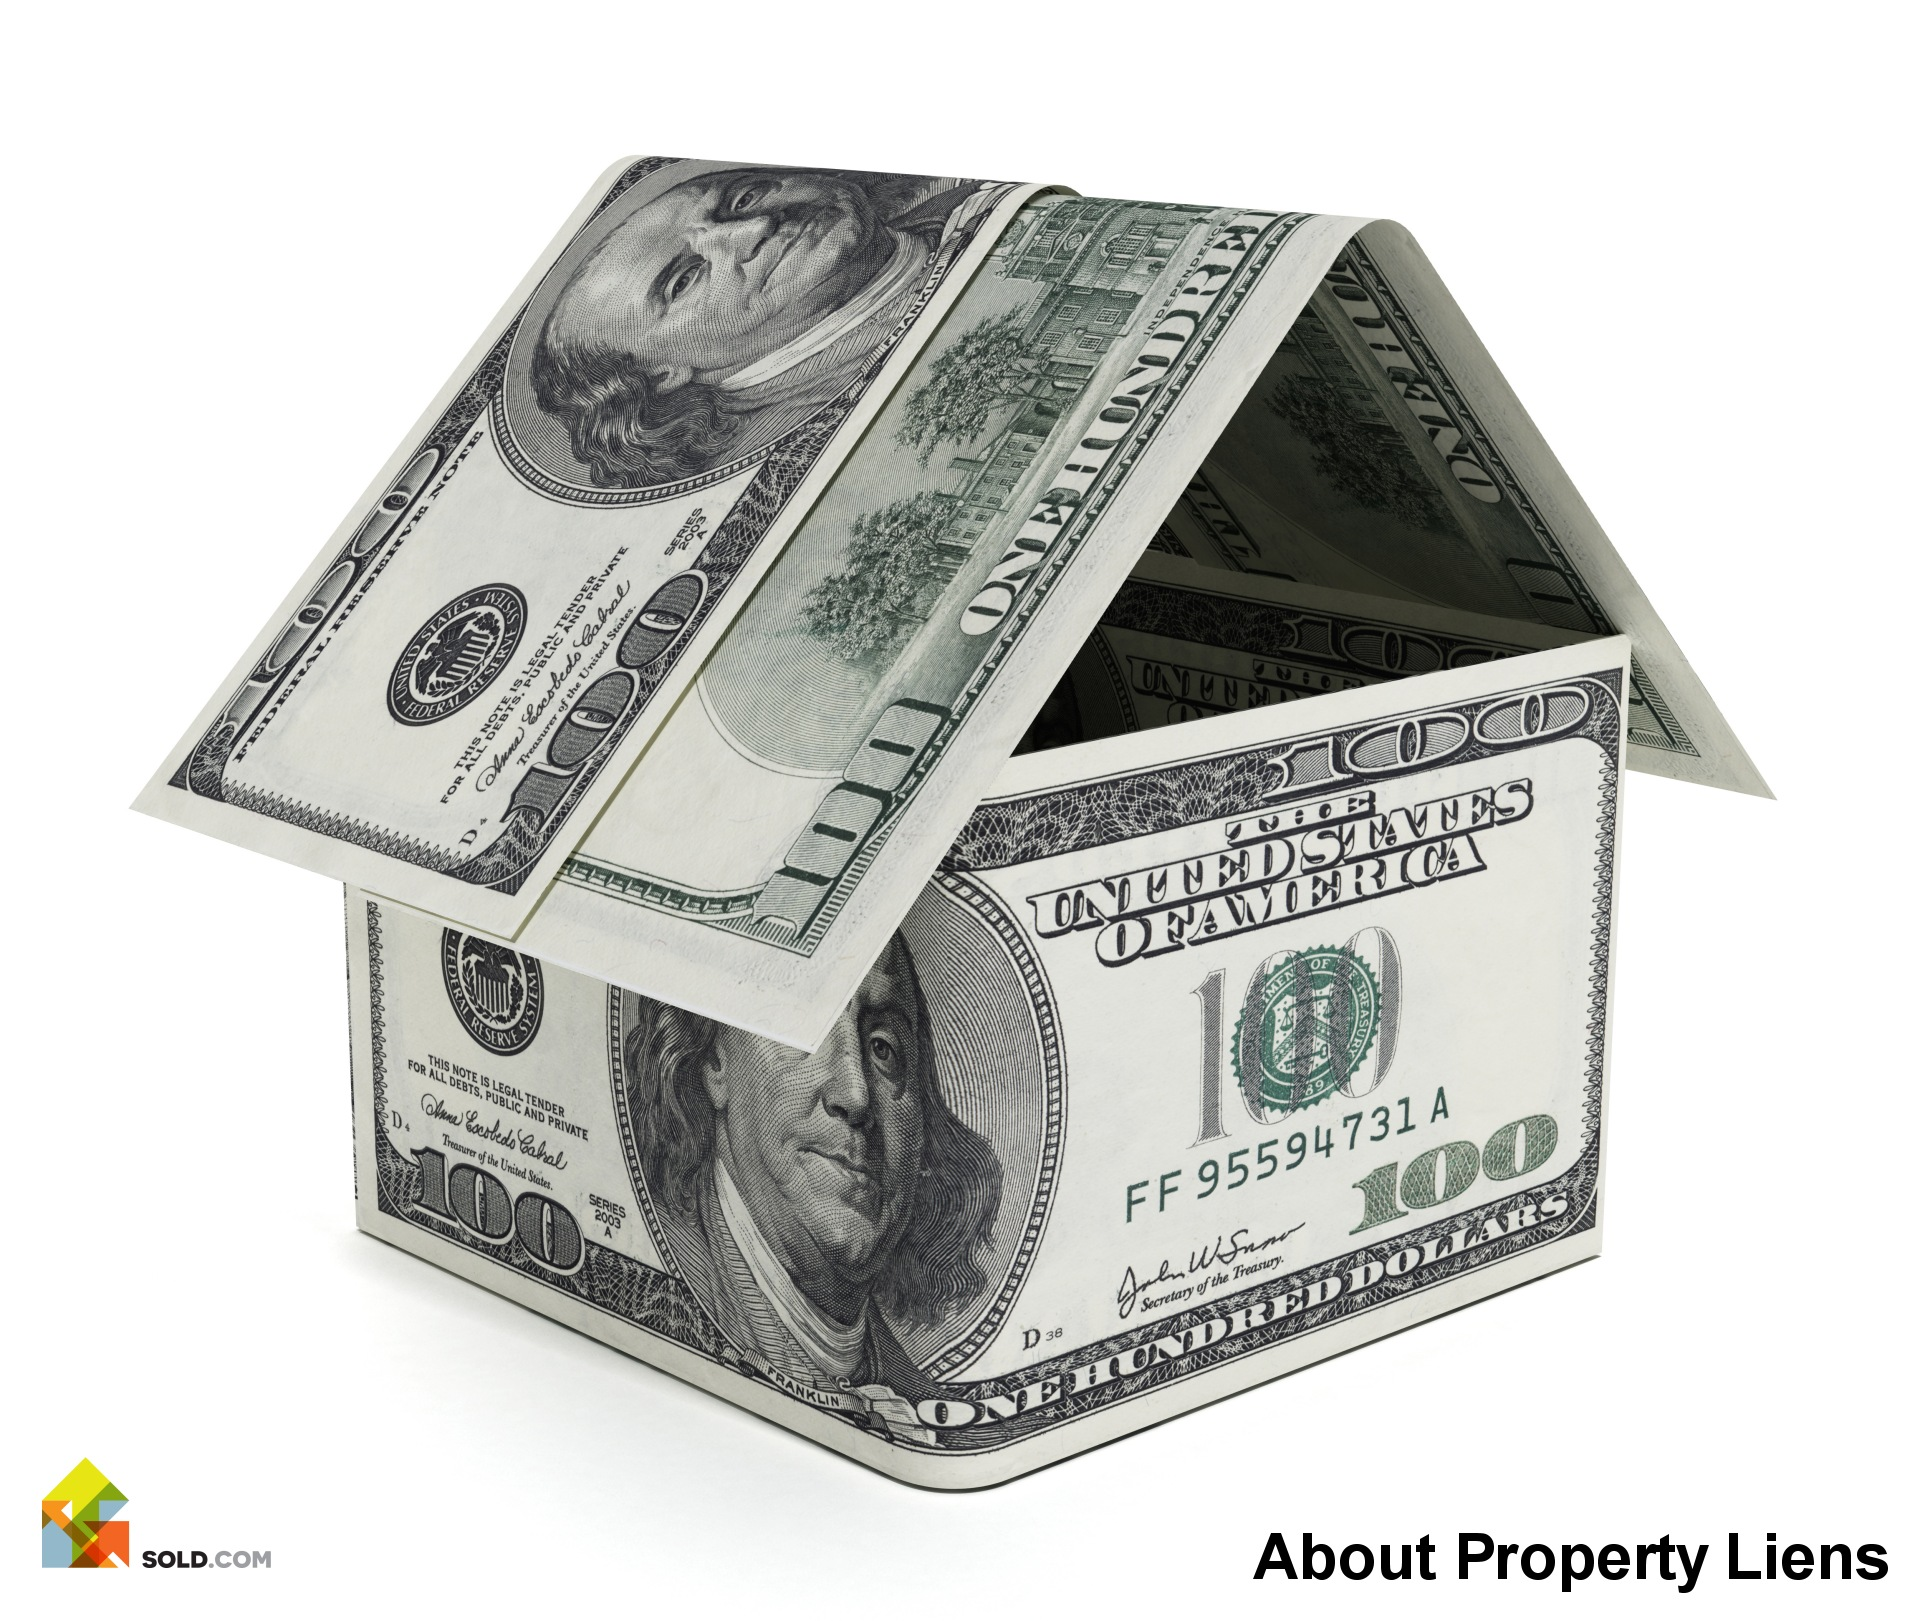 What Sellers Should Know About Property Liens